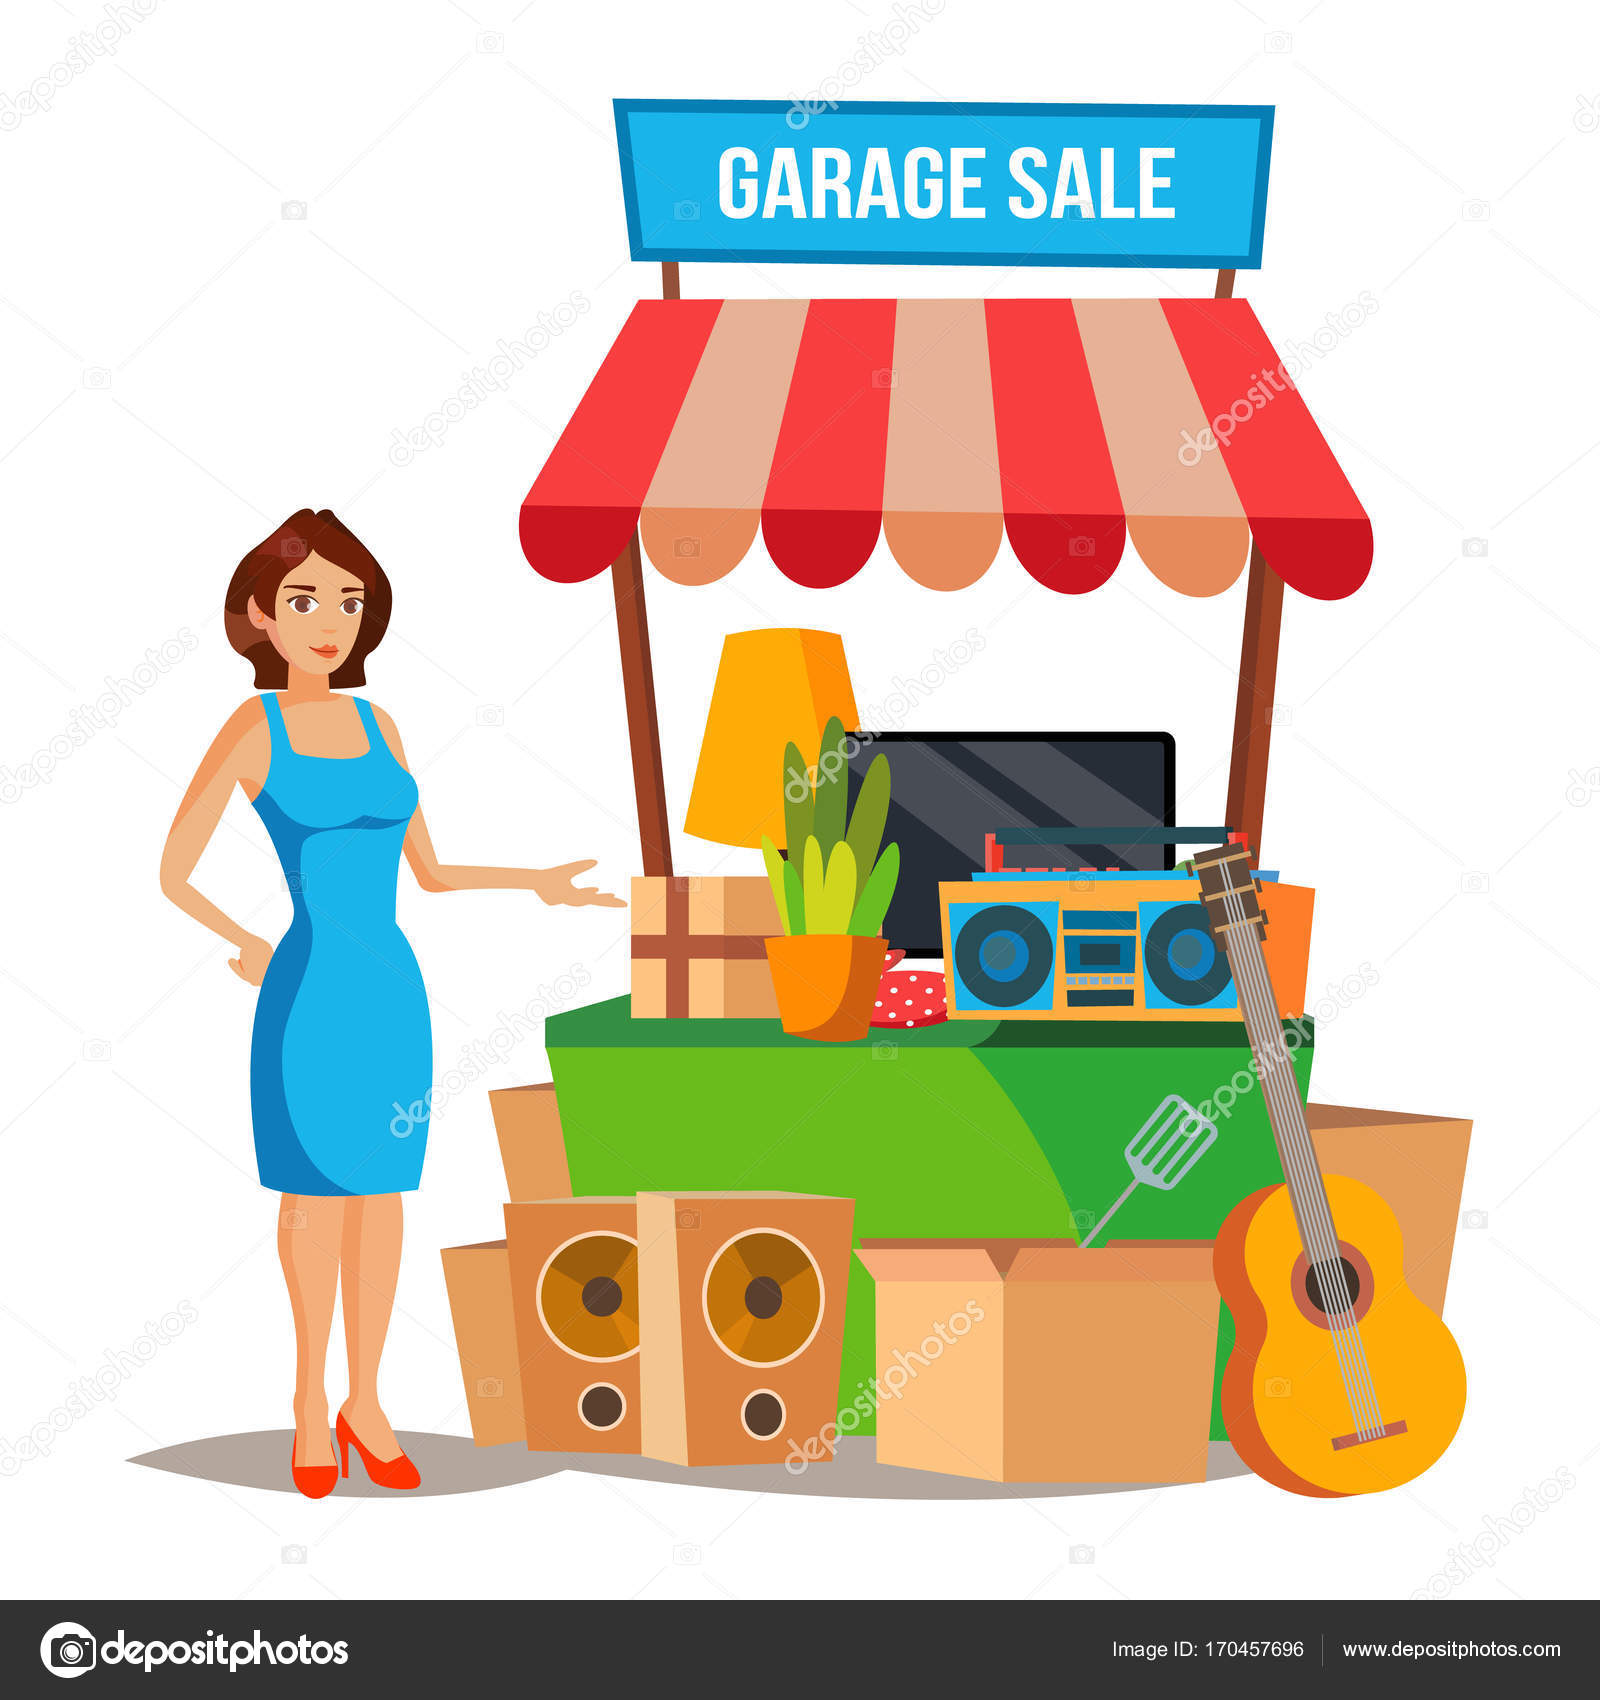 Yard Sale Vector. Household Items Sale. Woman Manning a